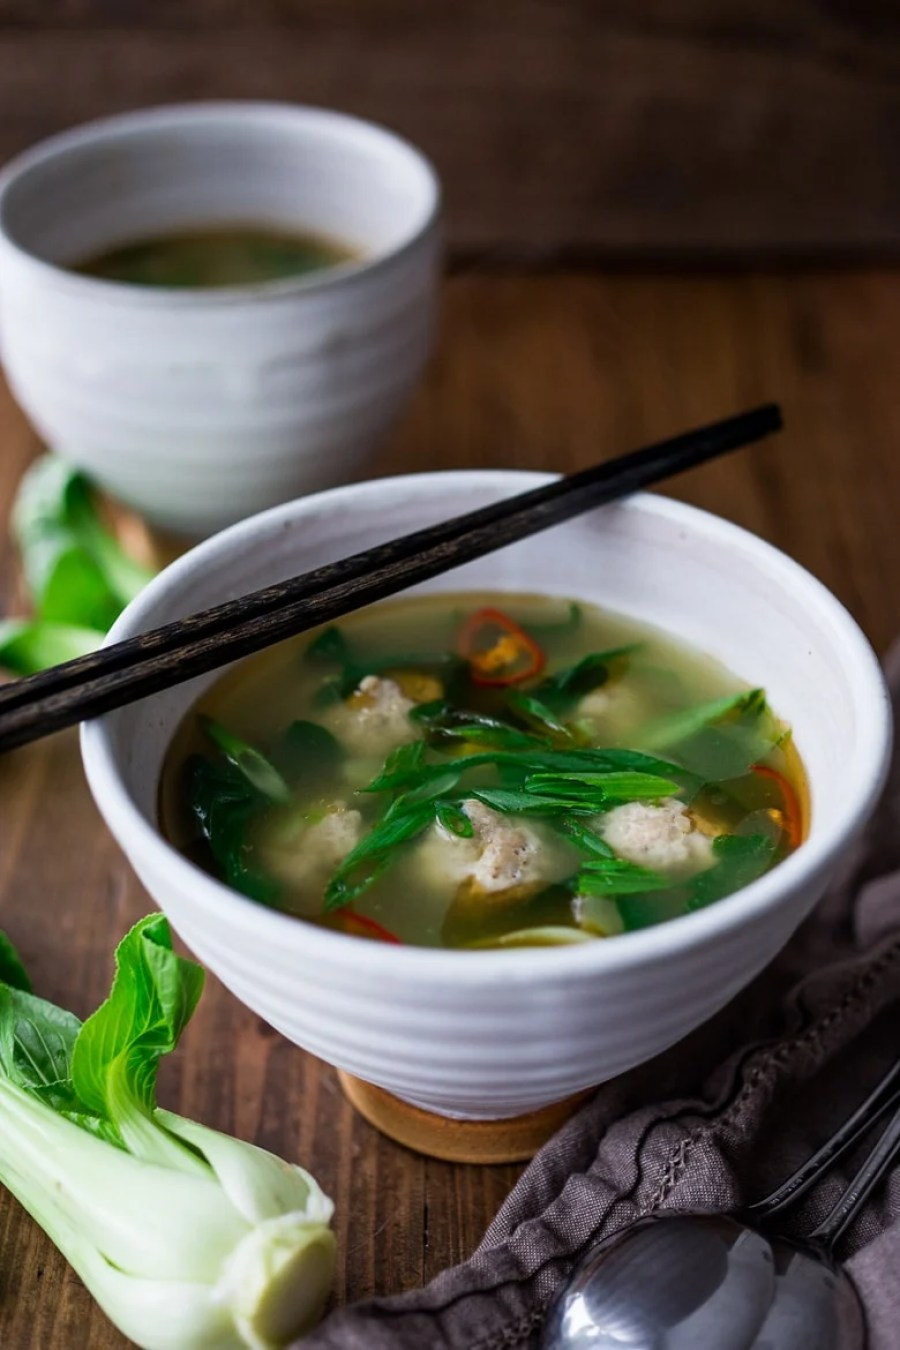 A healing recipe for Chicken Wonton-Less Soup with Bok Choy- a simple flavorful broth-based soup that is paleo, low carb and gluten free. | www.feastingathome.com